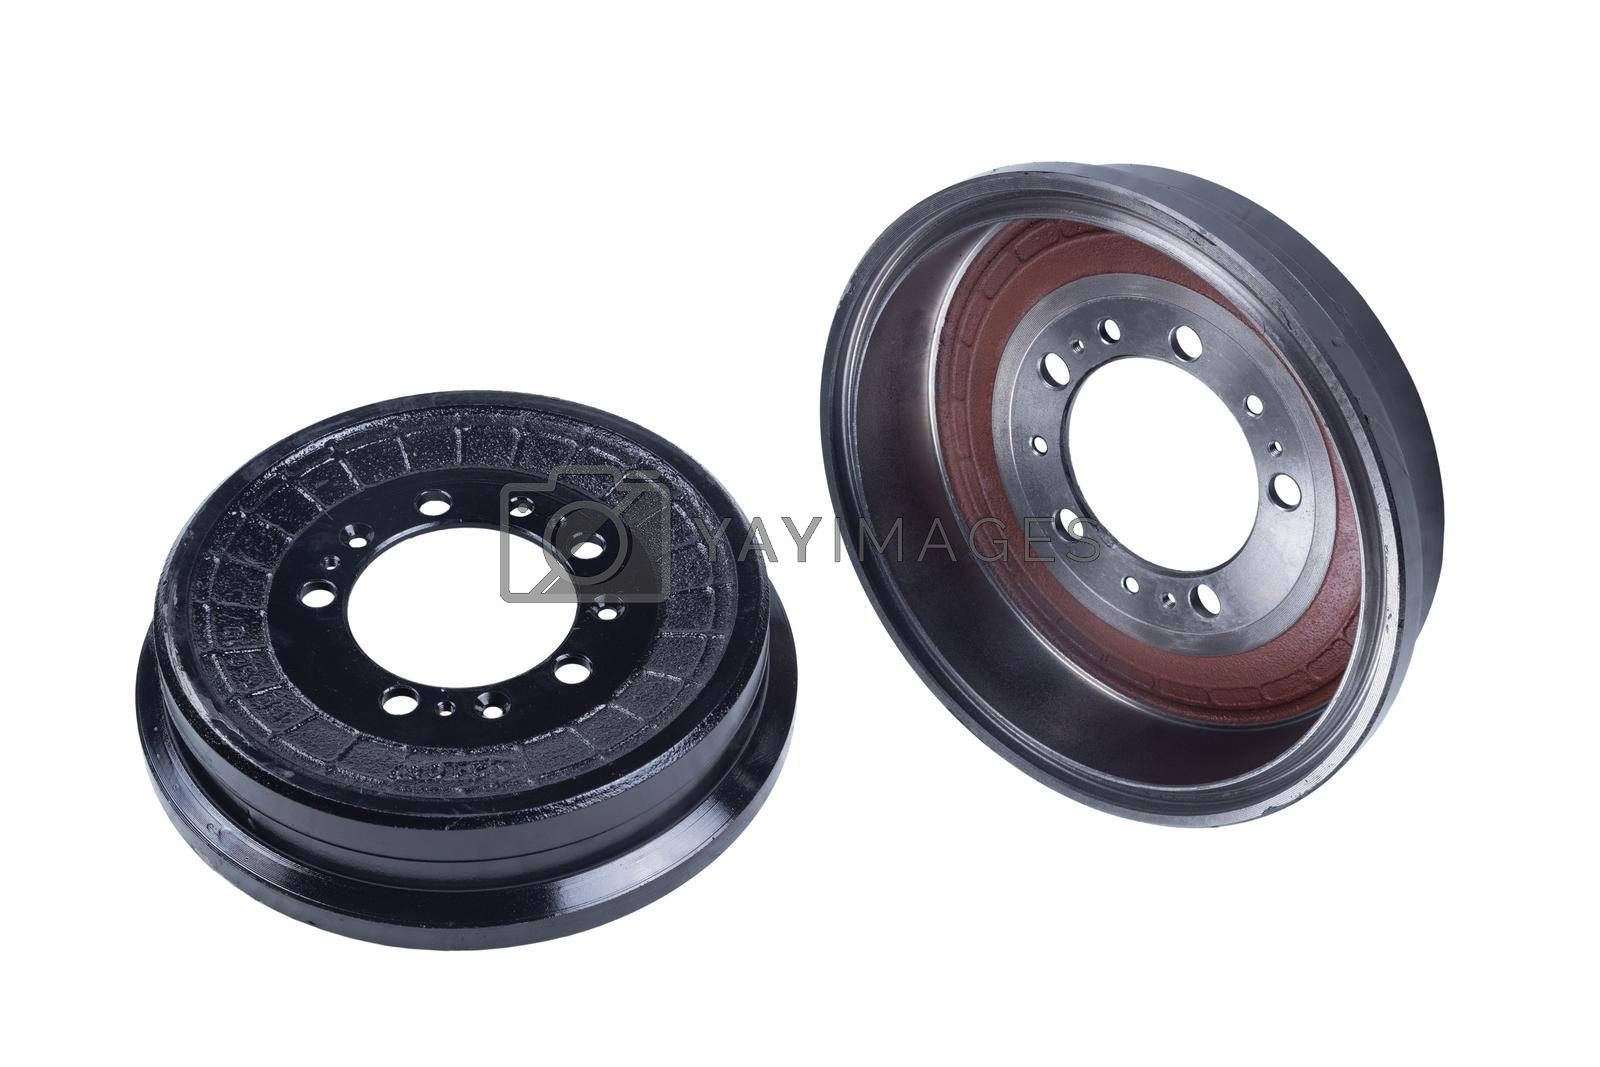 a set of new brake drums isolated on white background